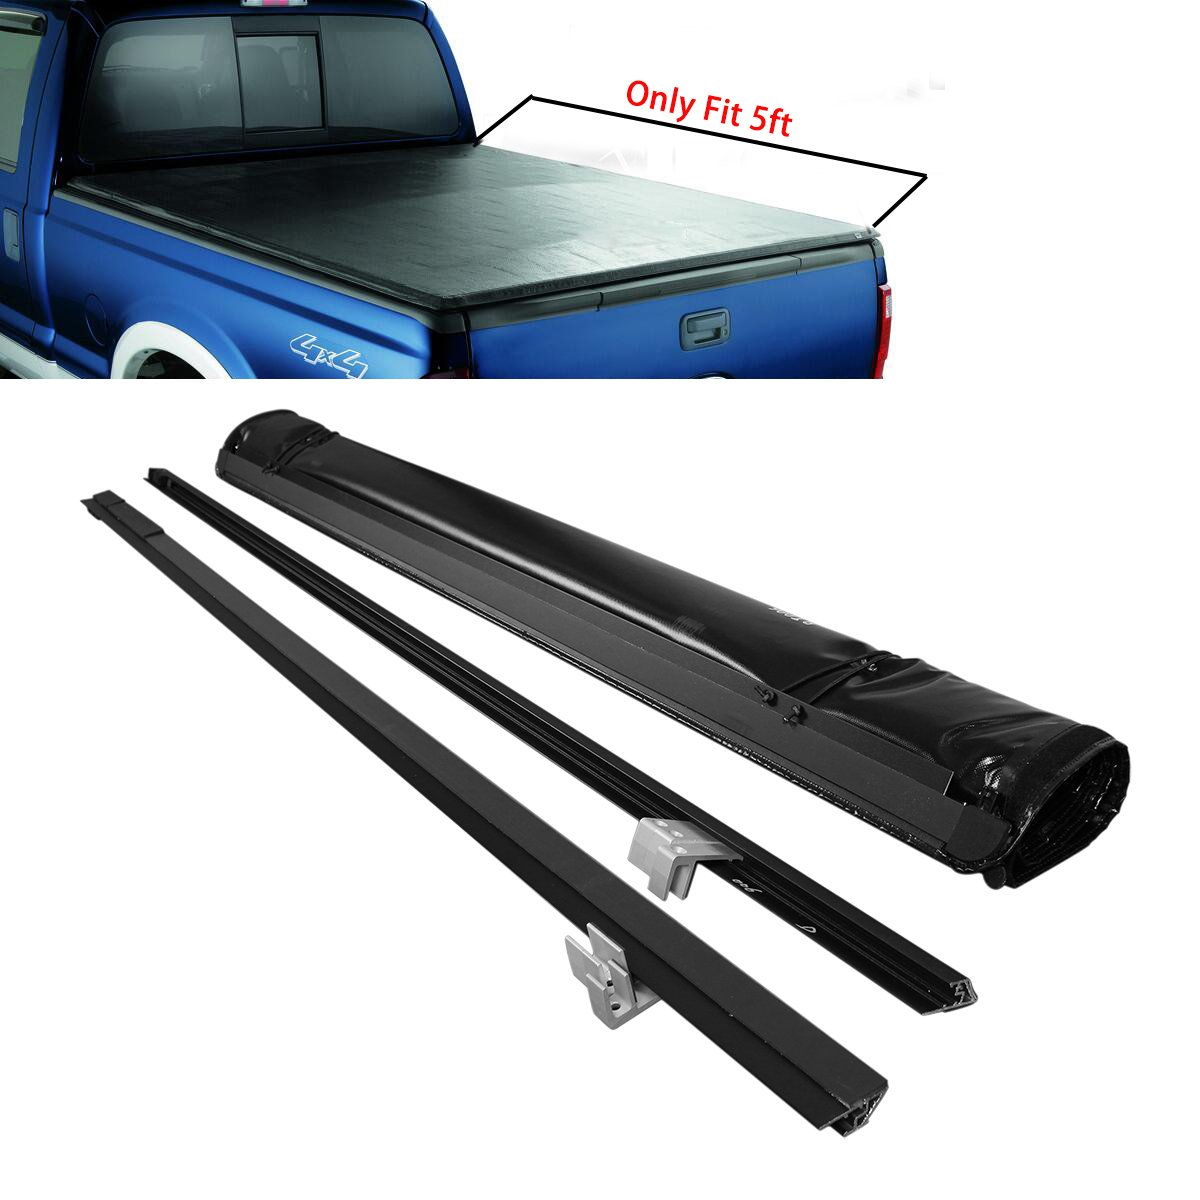 b39928a4257 Get Quotations · RAFTUDRIVE Soft Roll-Up Tonneau Cover Fit 2016-2017 Toyota  Tacoma 5ft Bed